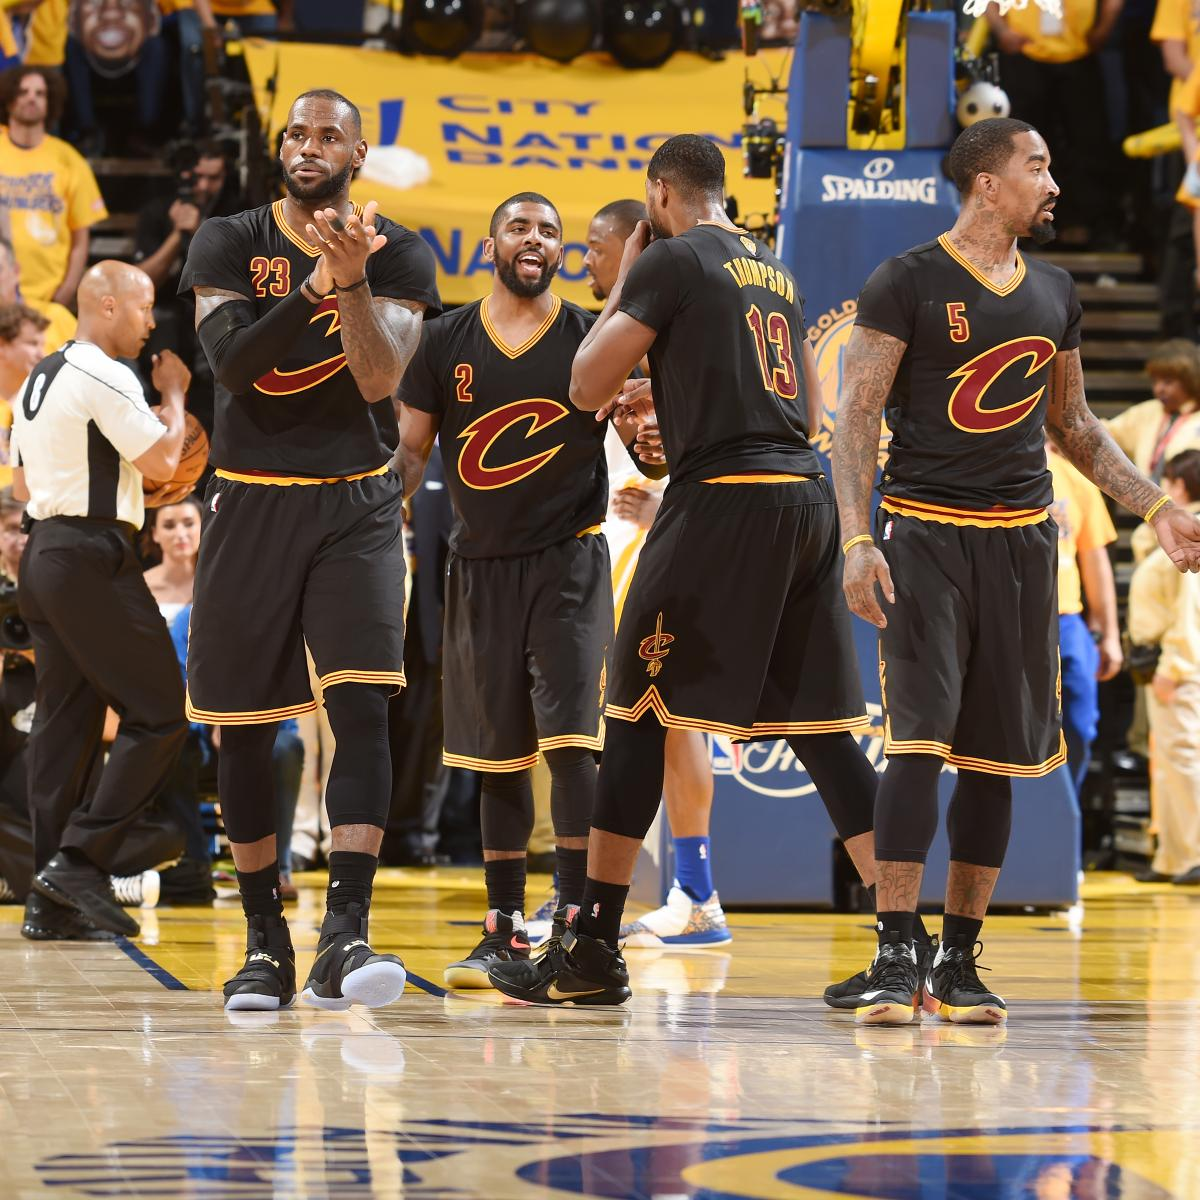 Warriors Come Out To Play Bleacher Report: NBA Finals 2016: Warriors Vs. Cavs Game 6 TV Schedule